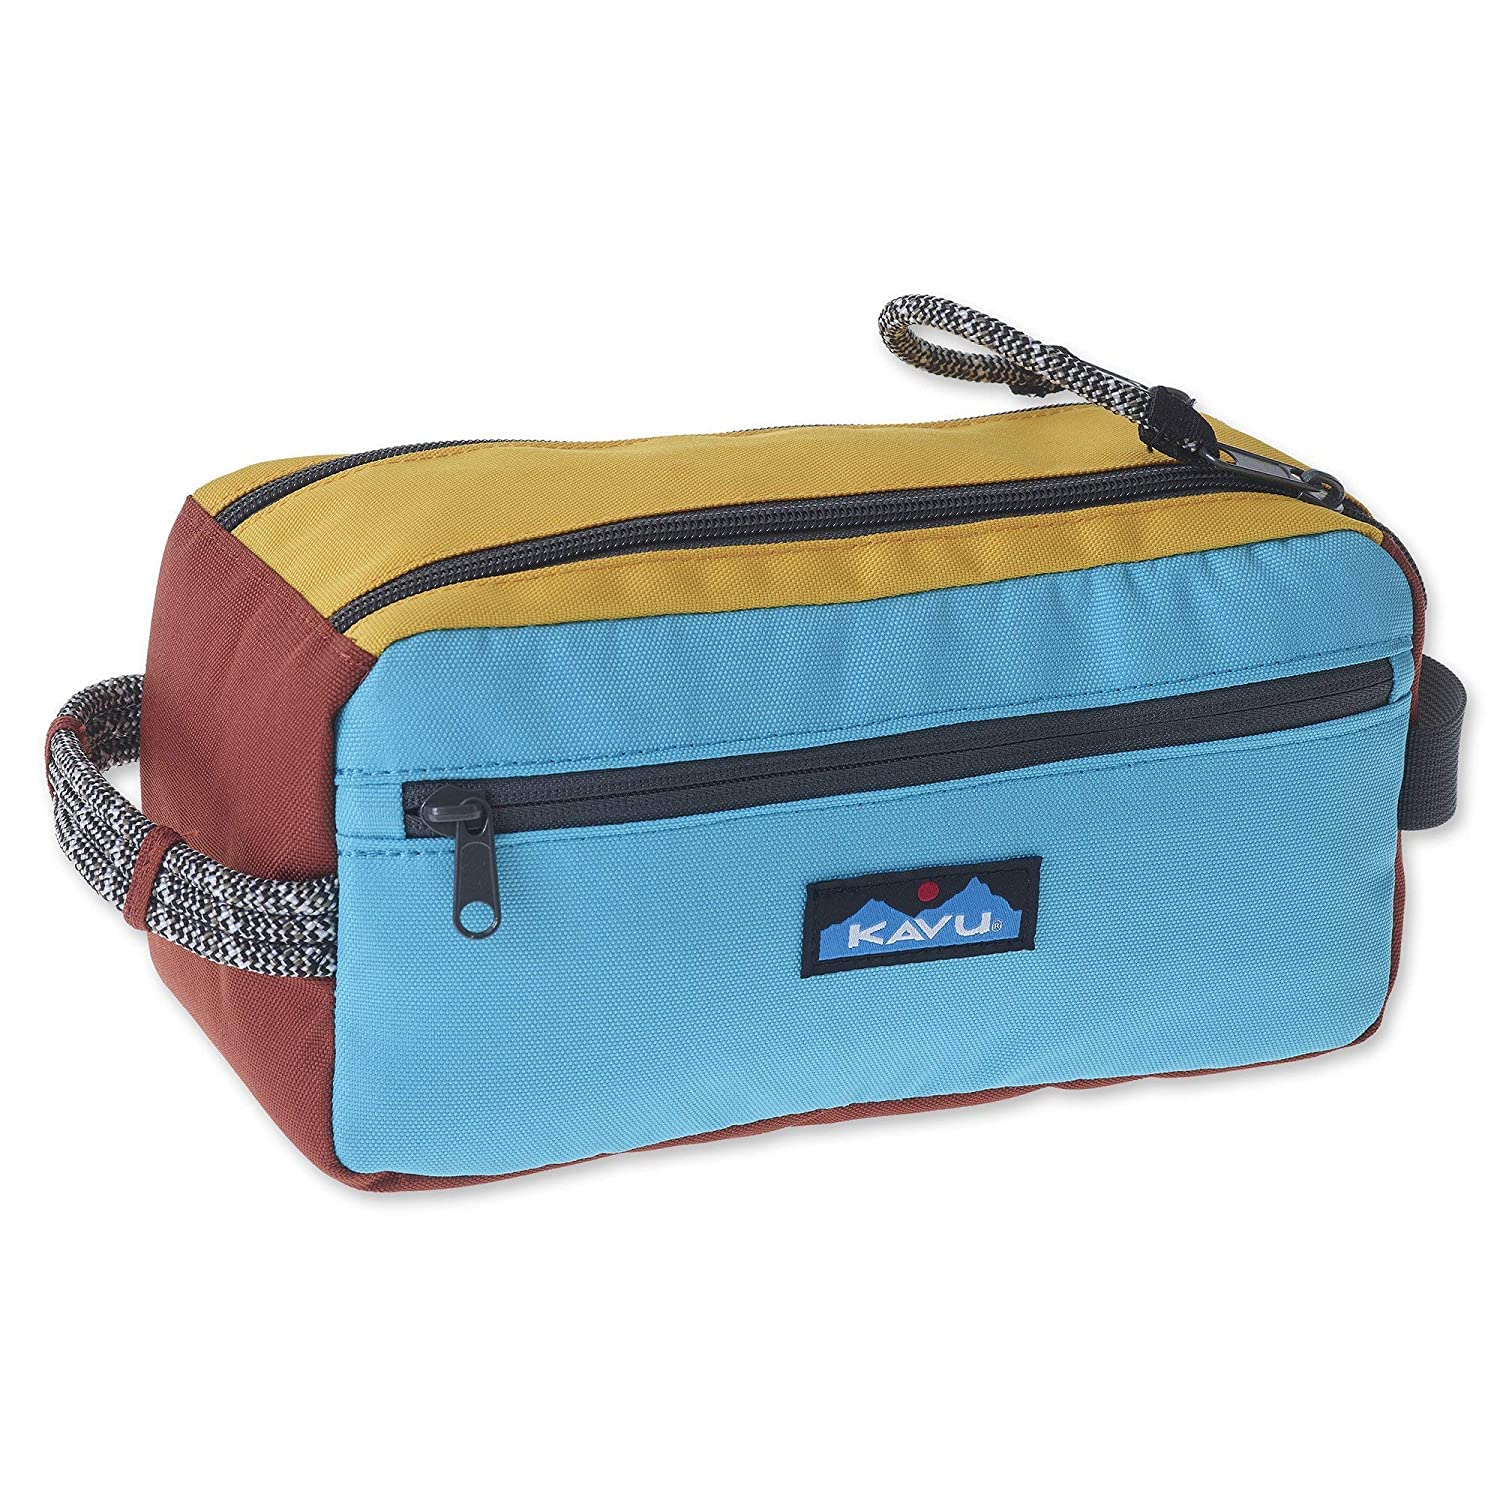 KAVU Grizzly Kit Accessory Bag Padded Lightweight Travel Case